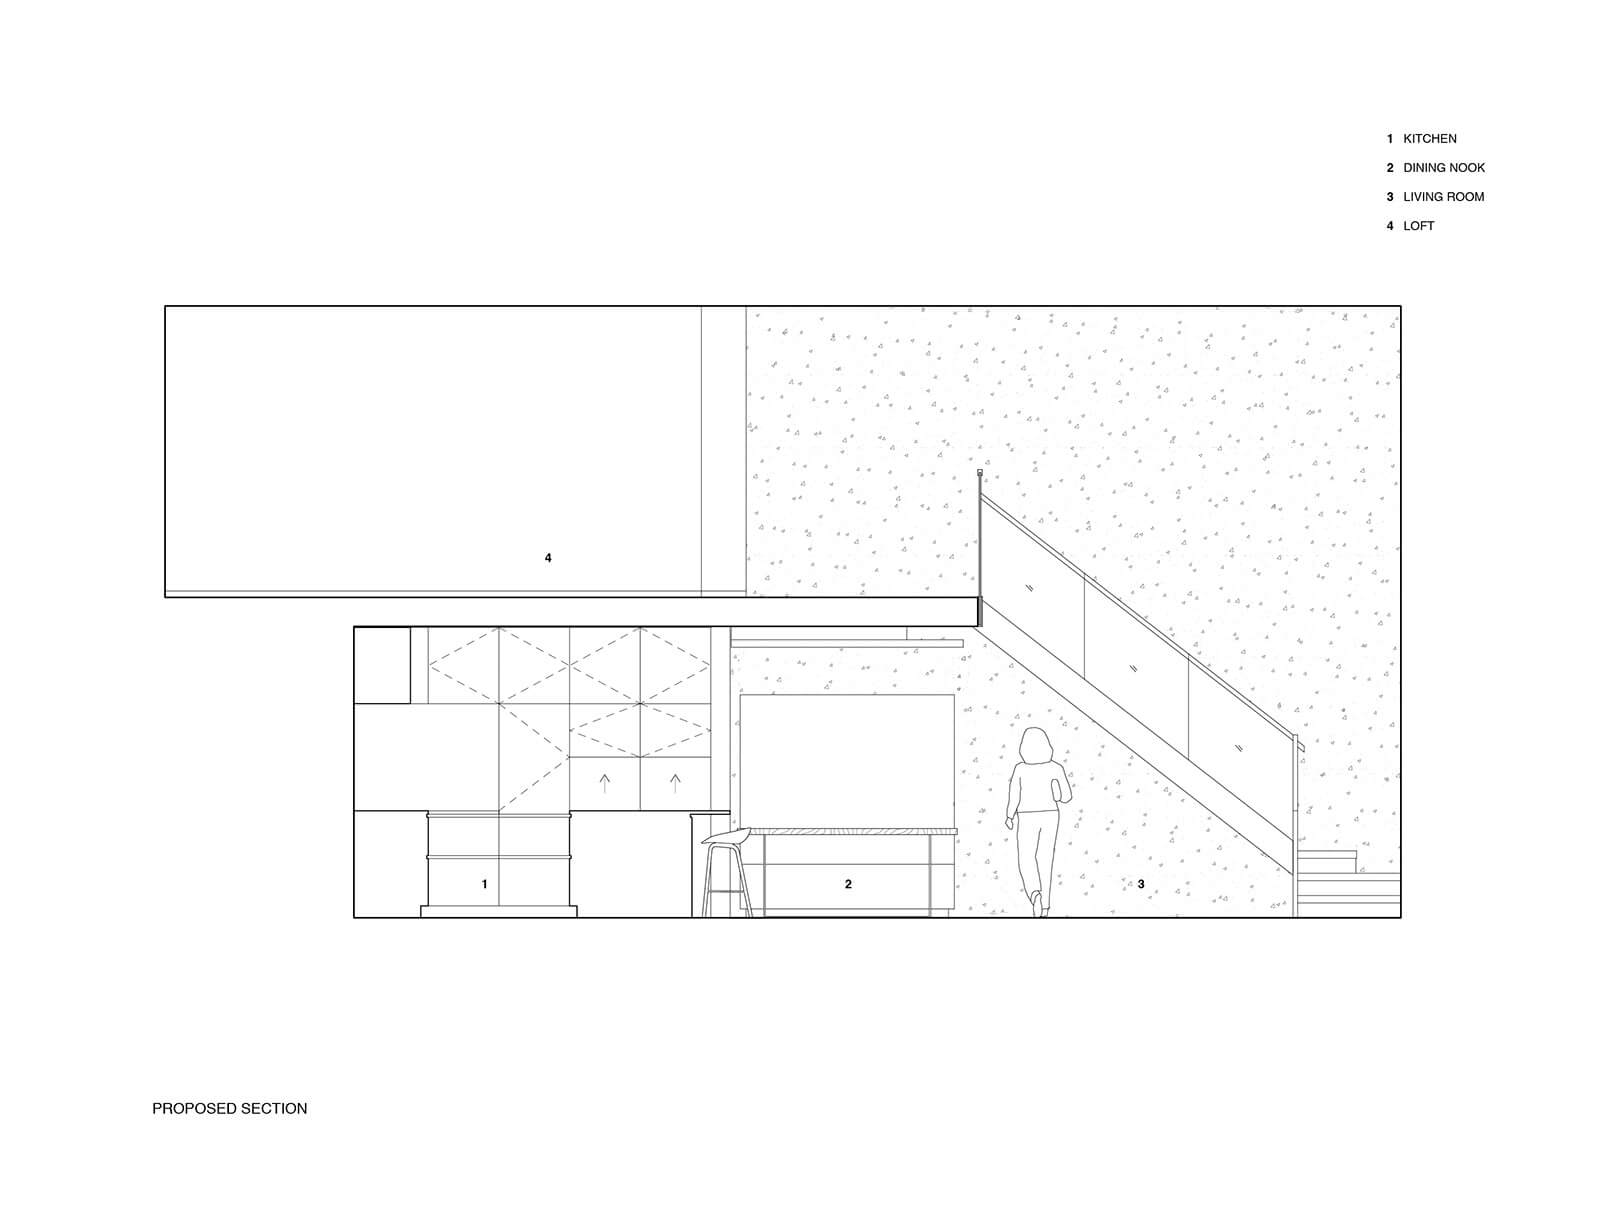 studio vara residential soma loft drawing section